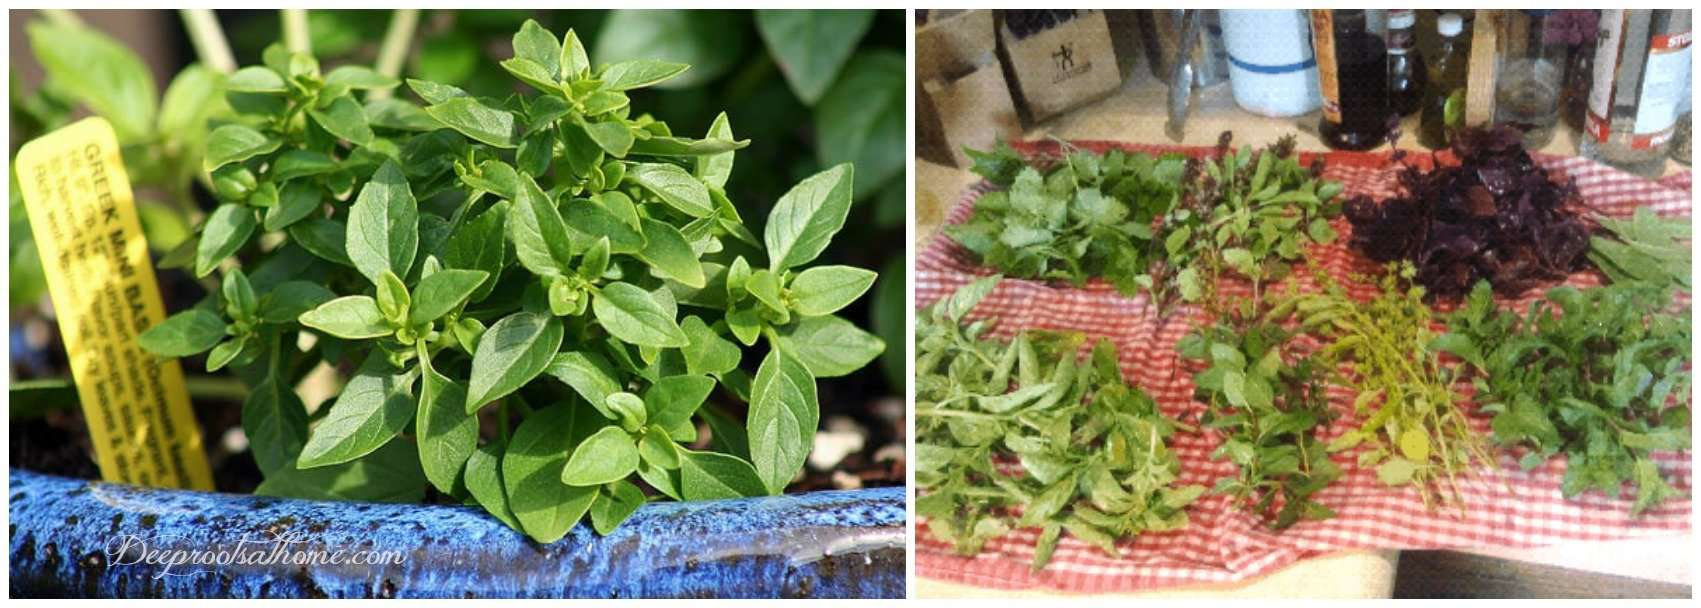 Root Basil Starts From Stem Cuttings Right In Your Window. Greek basil